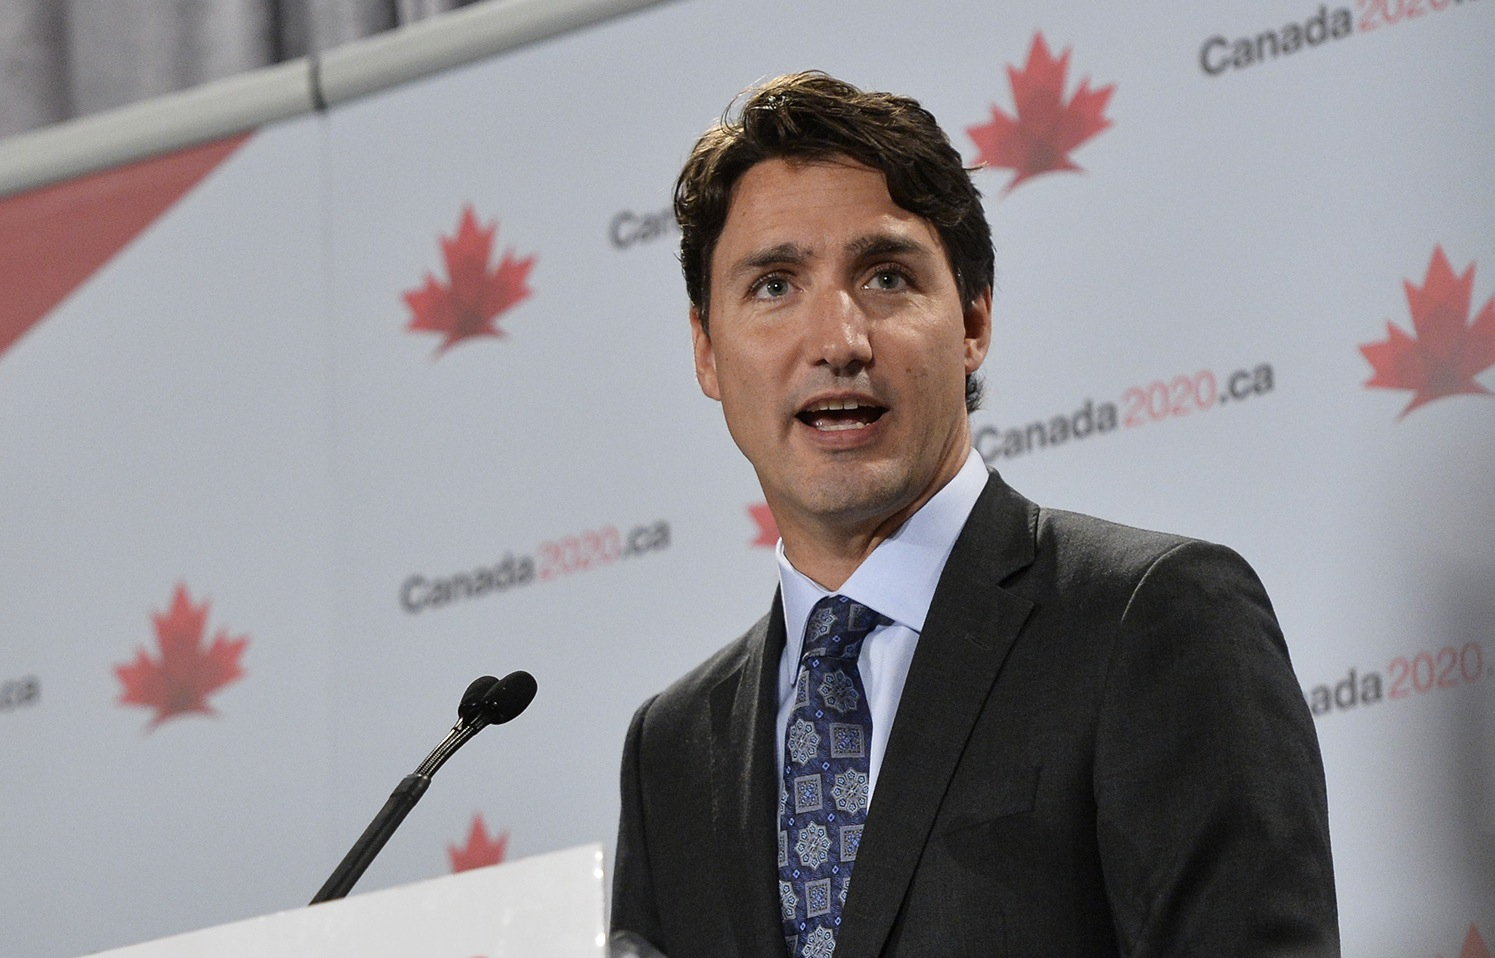 Justin Trudeau continues to defy expectation (Flickr/Canada 2020 CC licence)